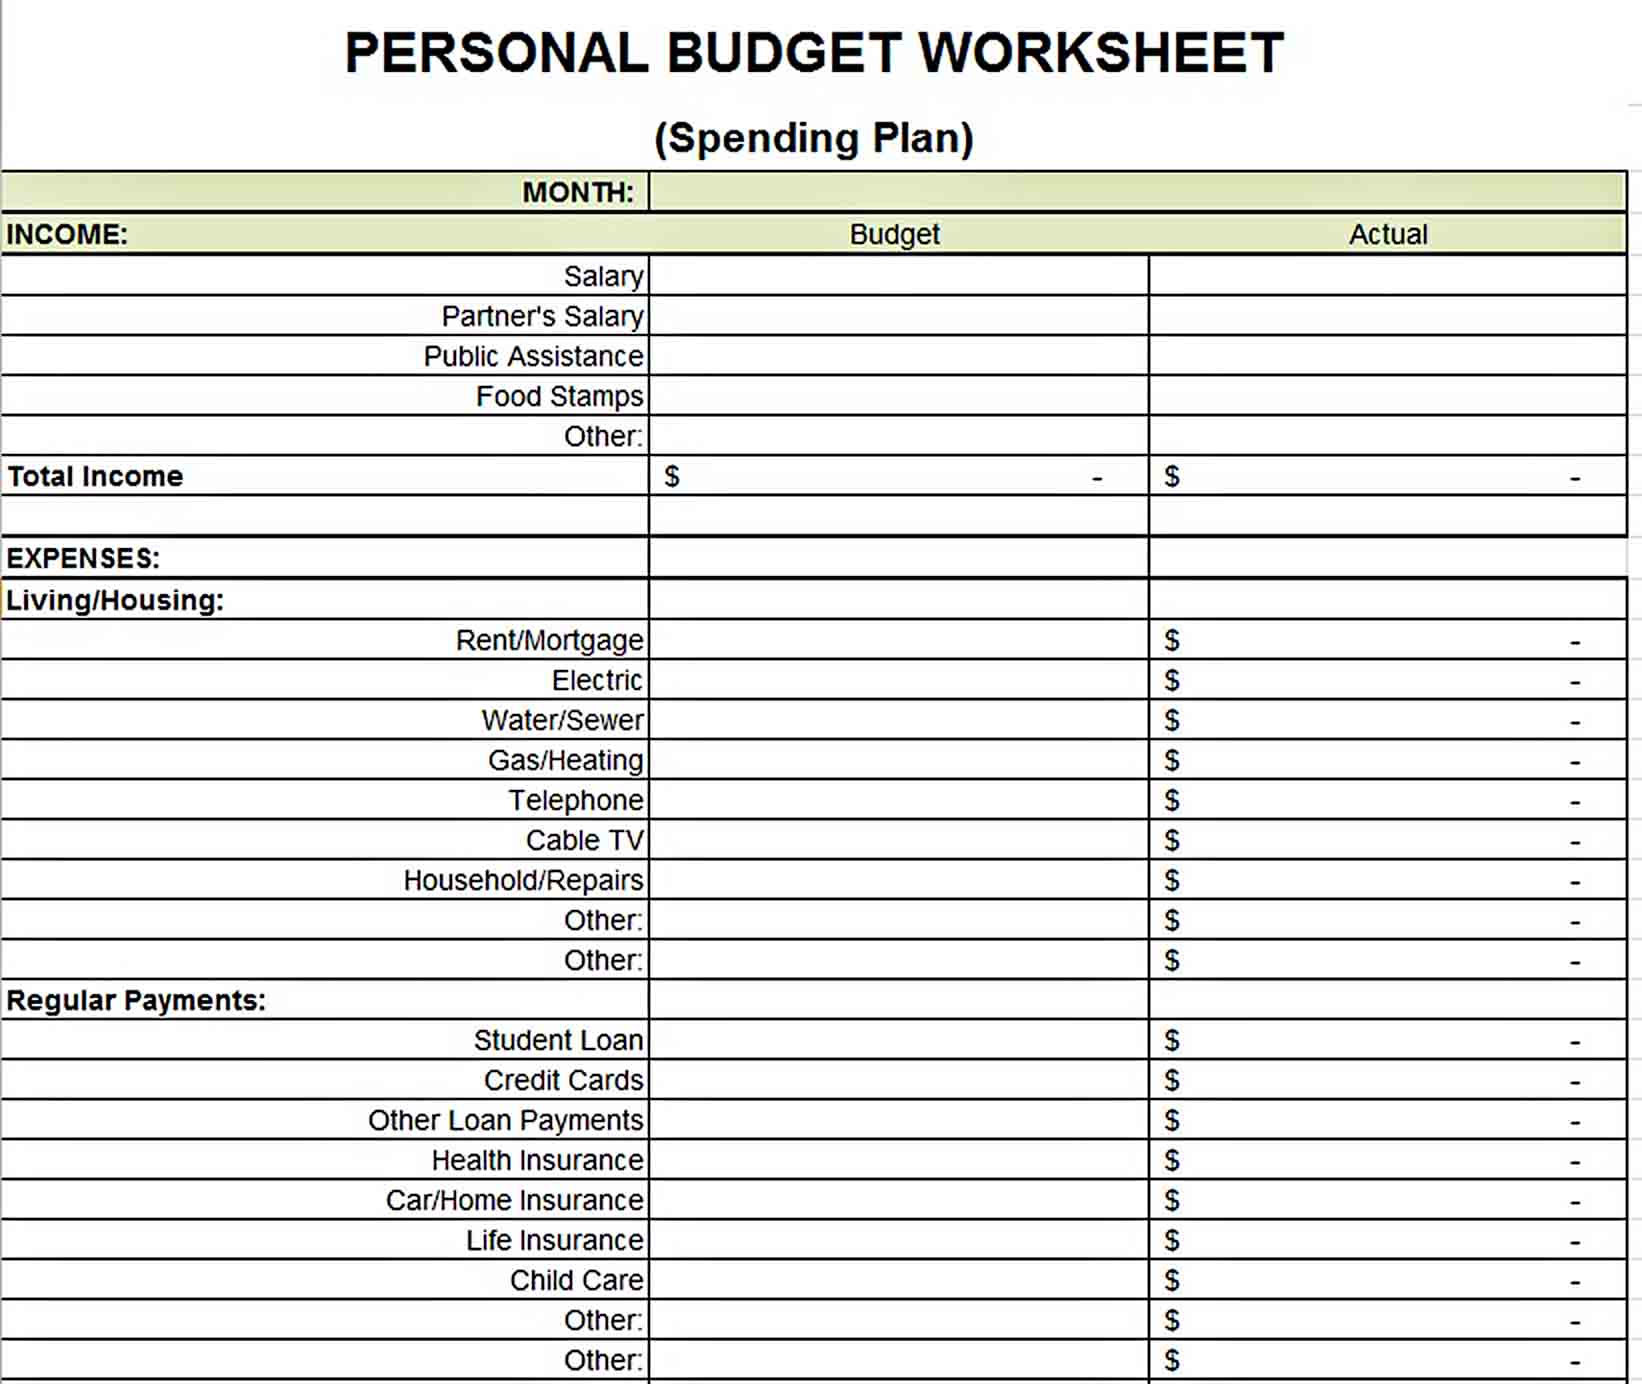 Personal Budget Weekly Expenses Worksheet Template in Excel sample